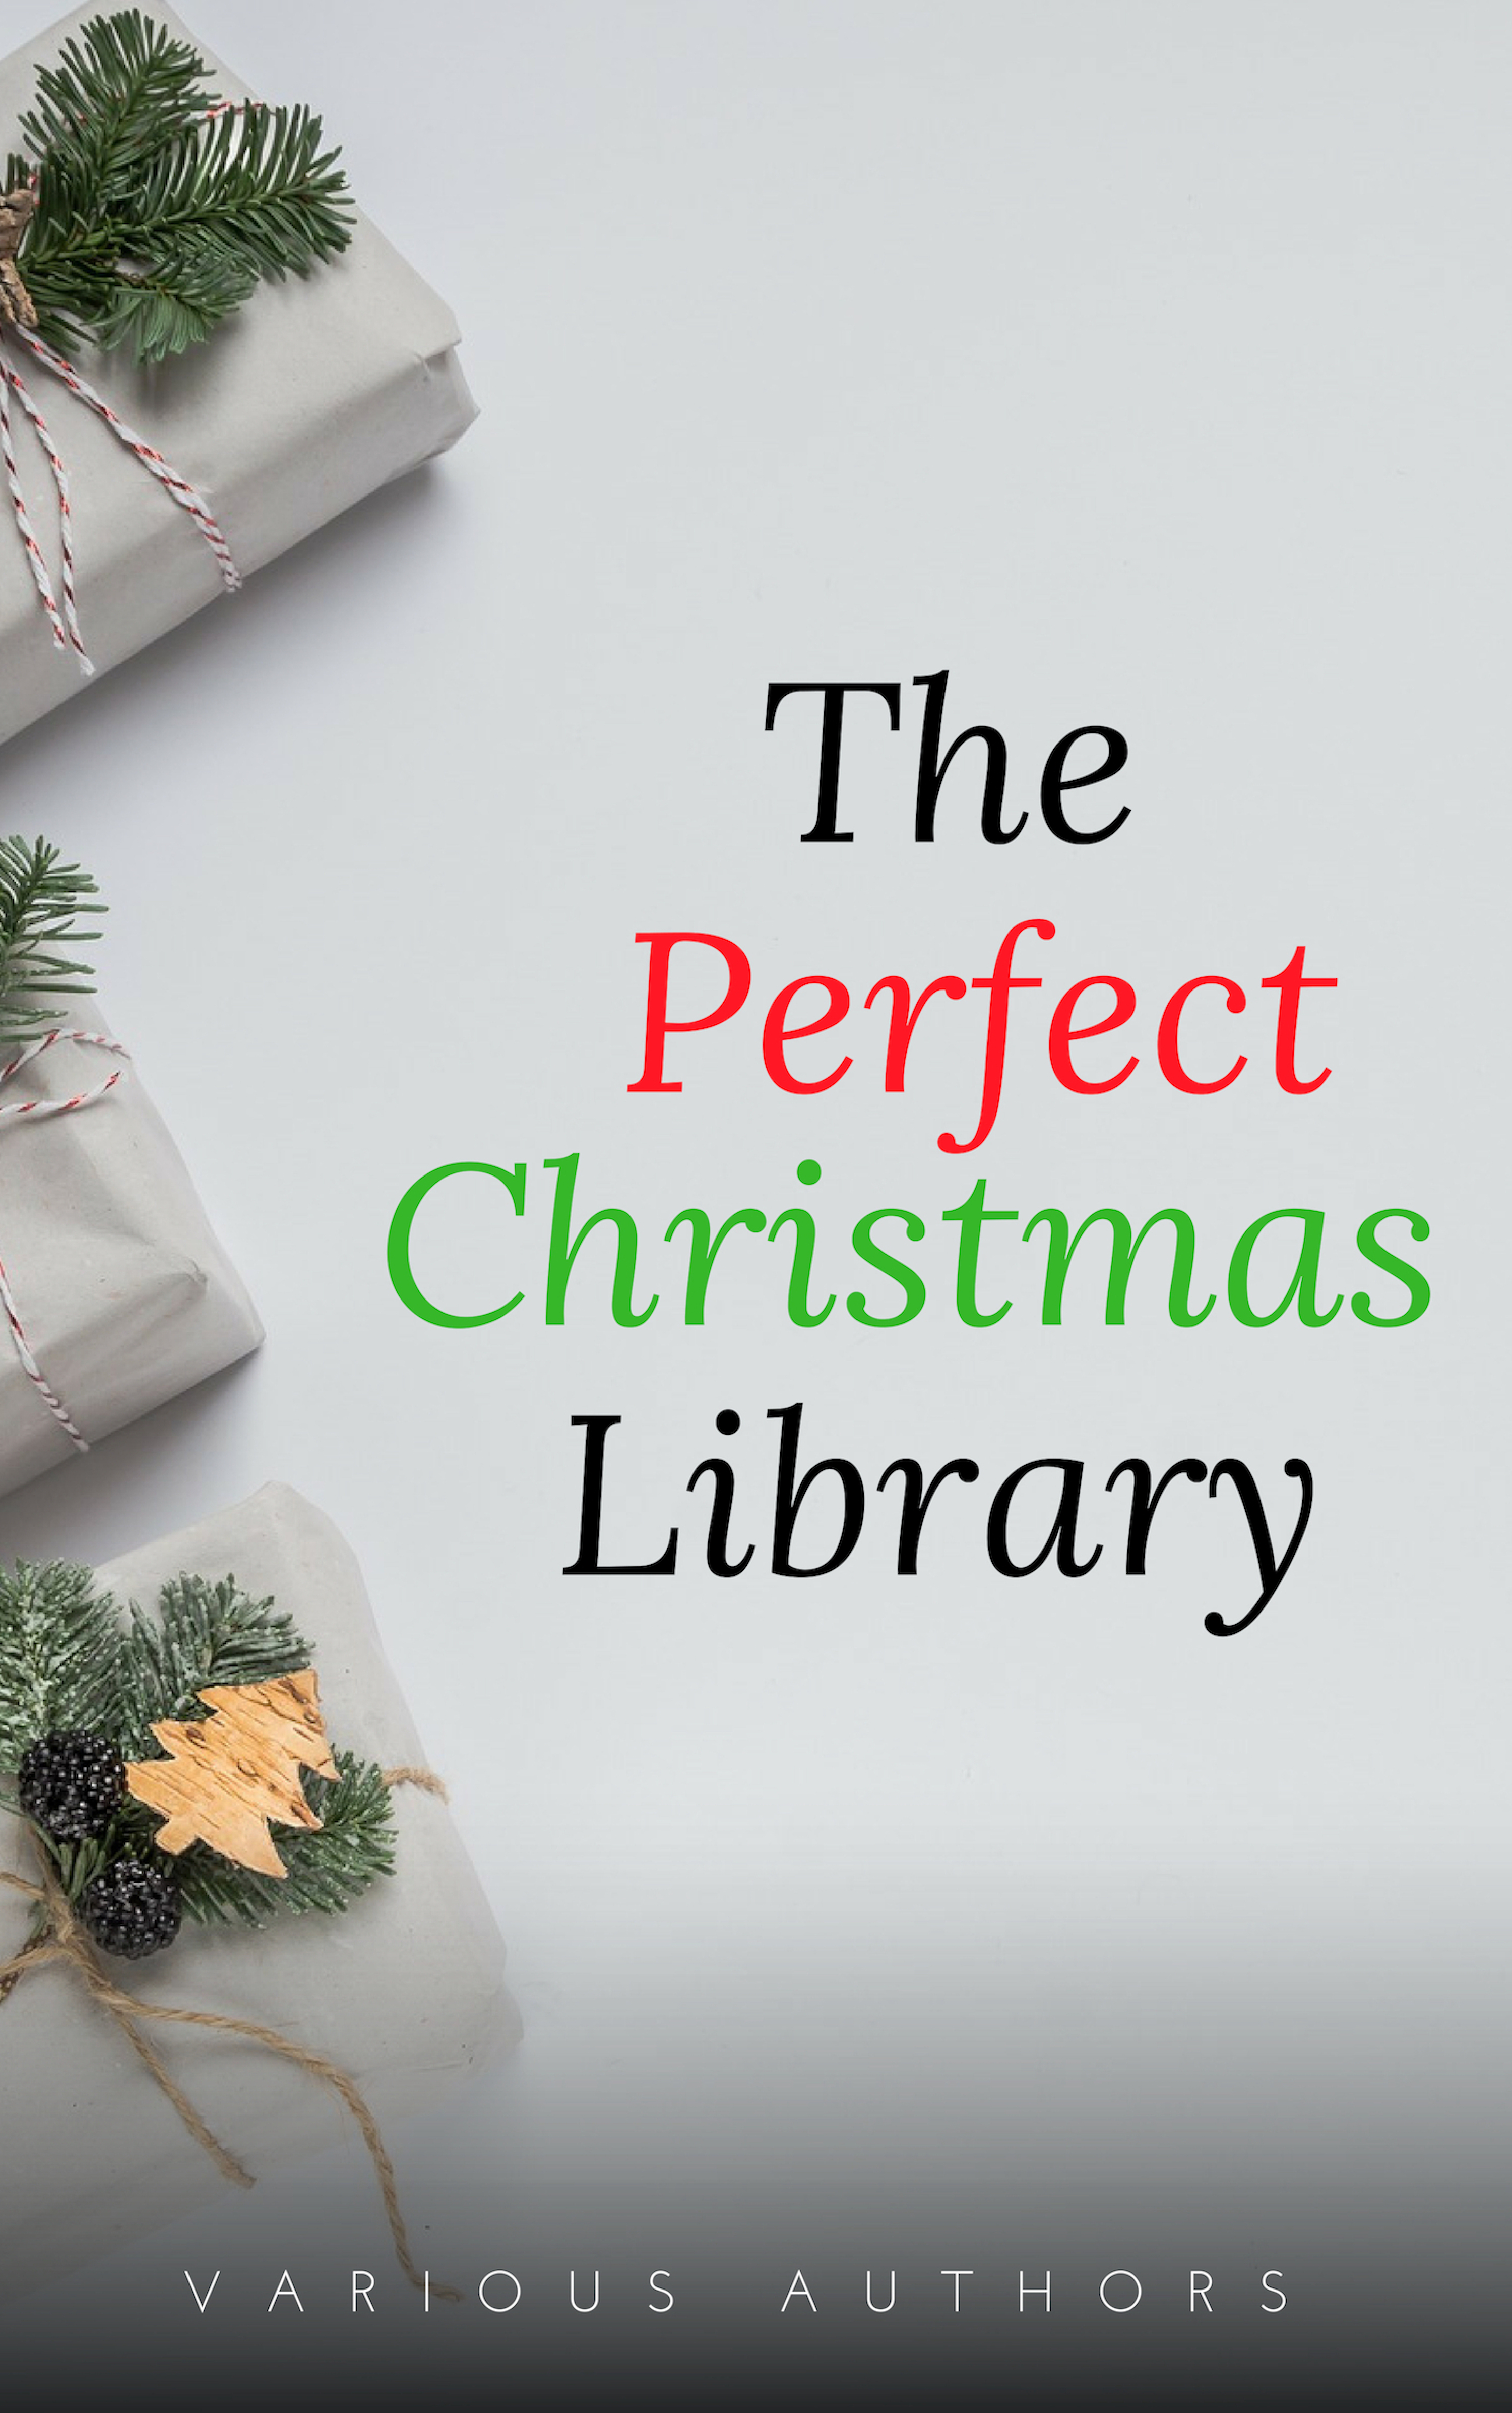 Лаймен Фрэнк Баум The Perfect Christmas Library: A Christmas Carol, The Cricket on the Hearth, A Christmas Sermon, Twelfth Night...and Many More (200 Stories)